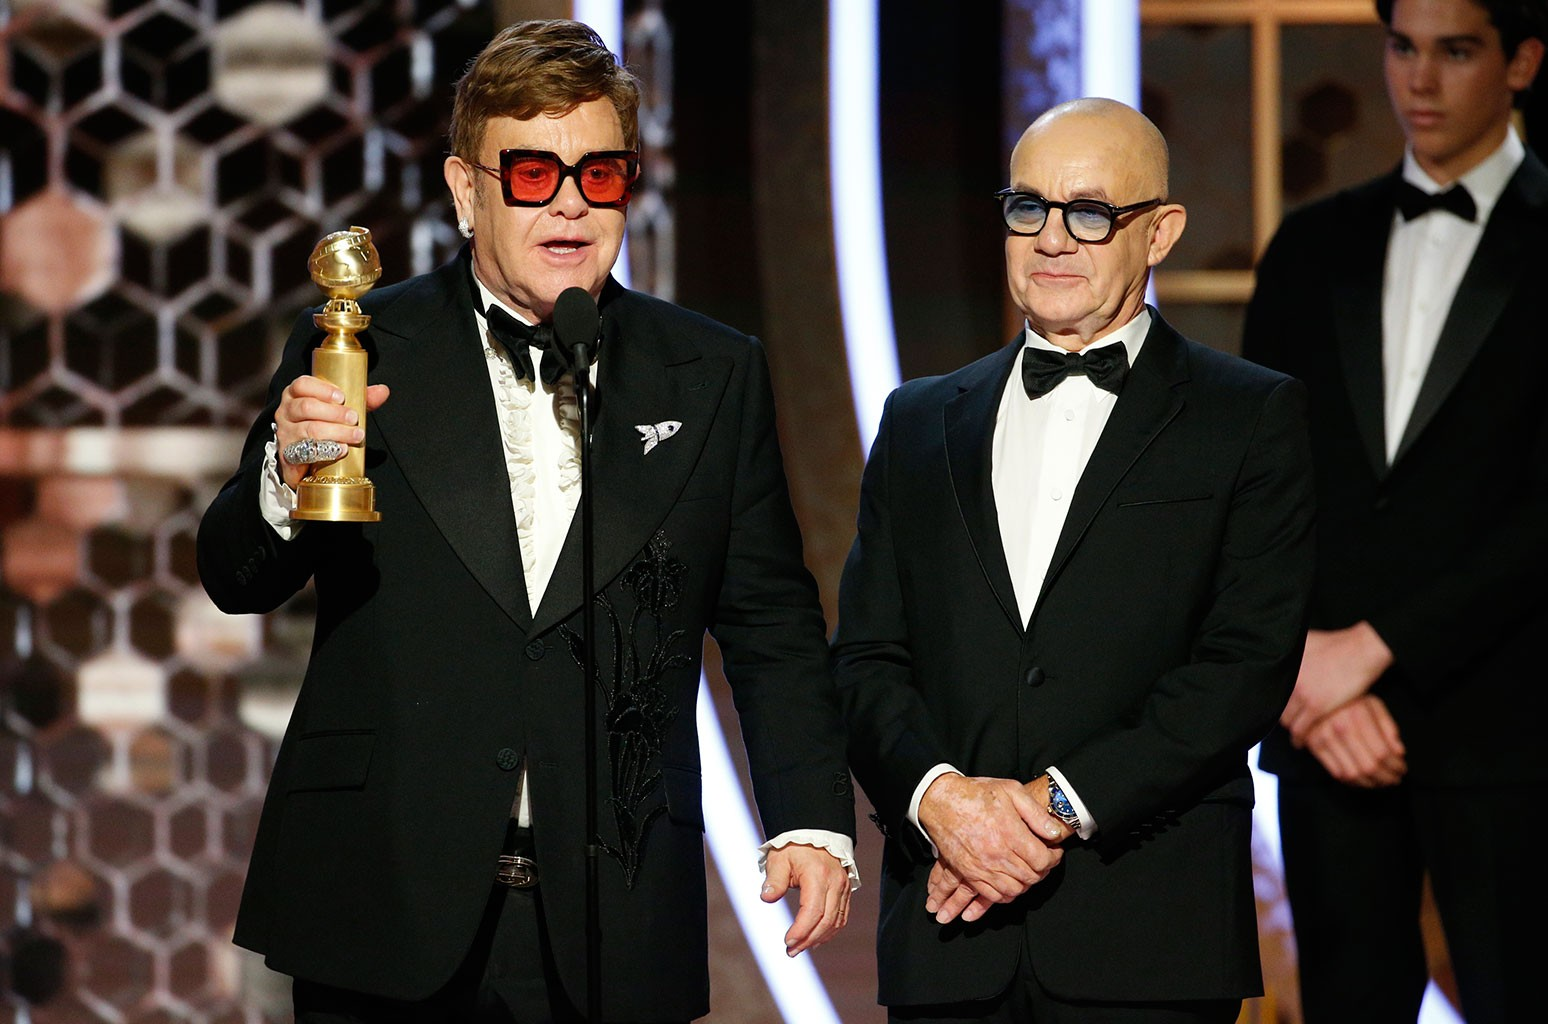 Sir Elton John and Bernie Taupin, Golden Globes